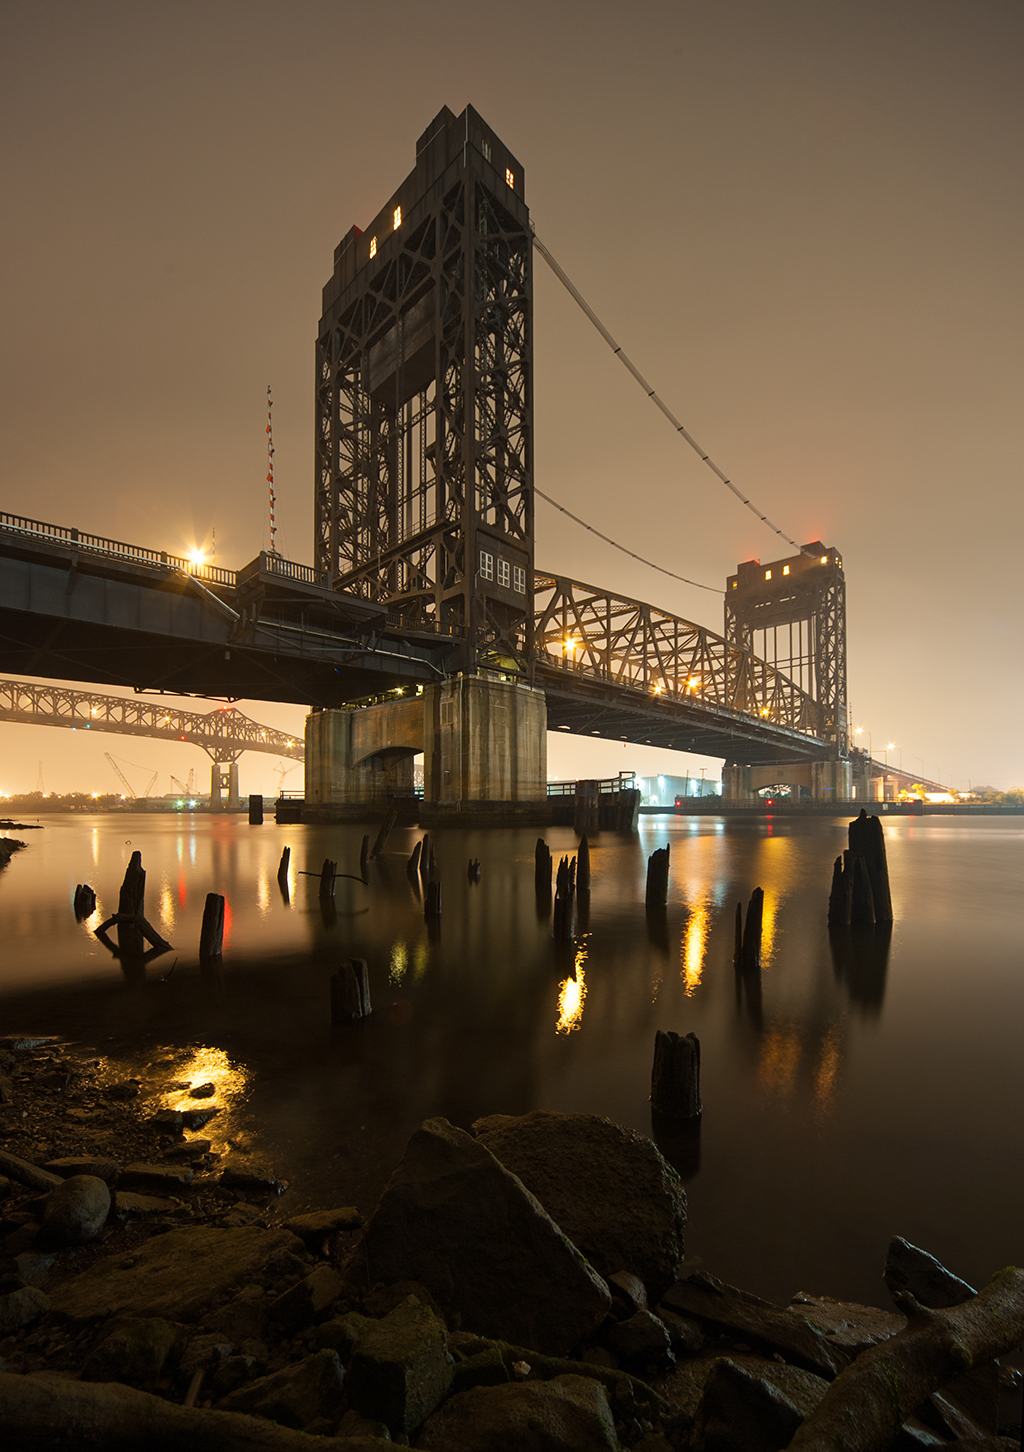 Passaic River Bridge with Pulaski Skyway in background